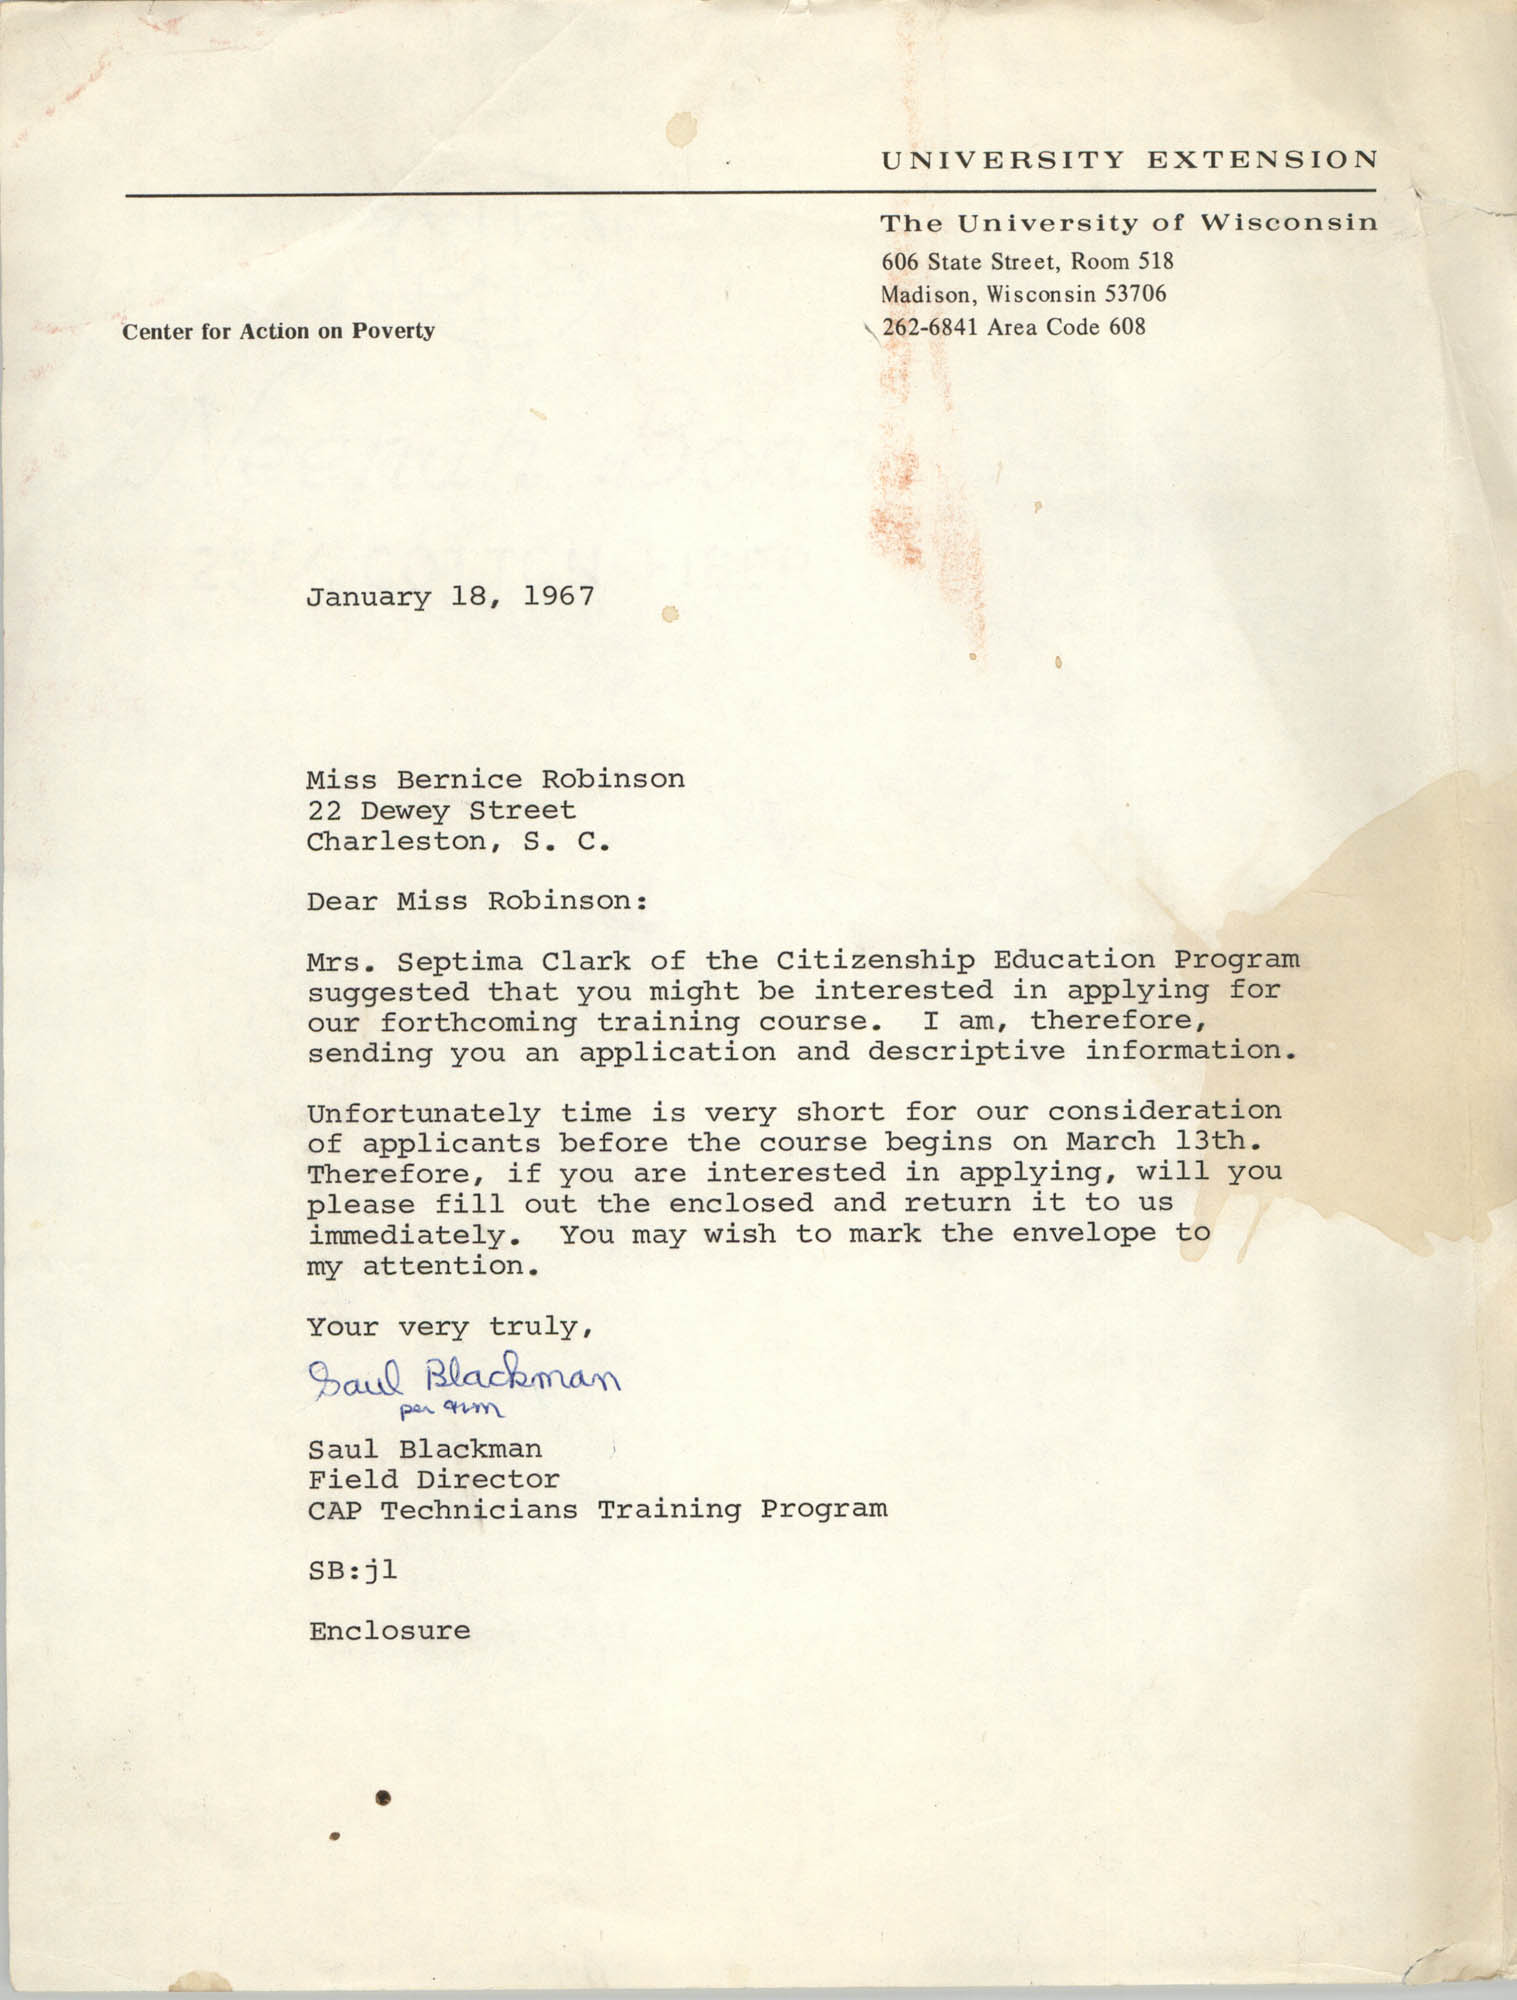 Letter from Saul Blackman to Bernice Robinson, January 18, 1967